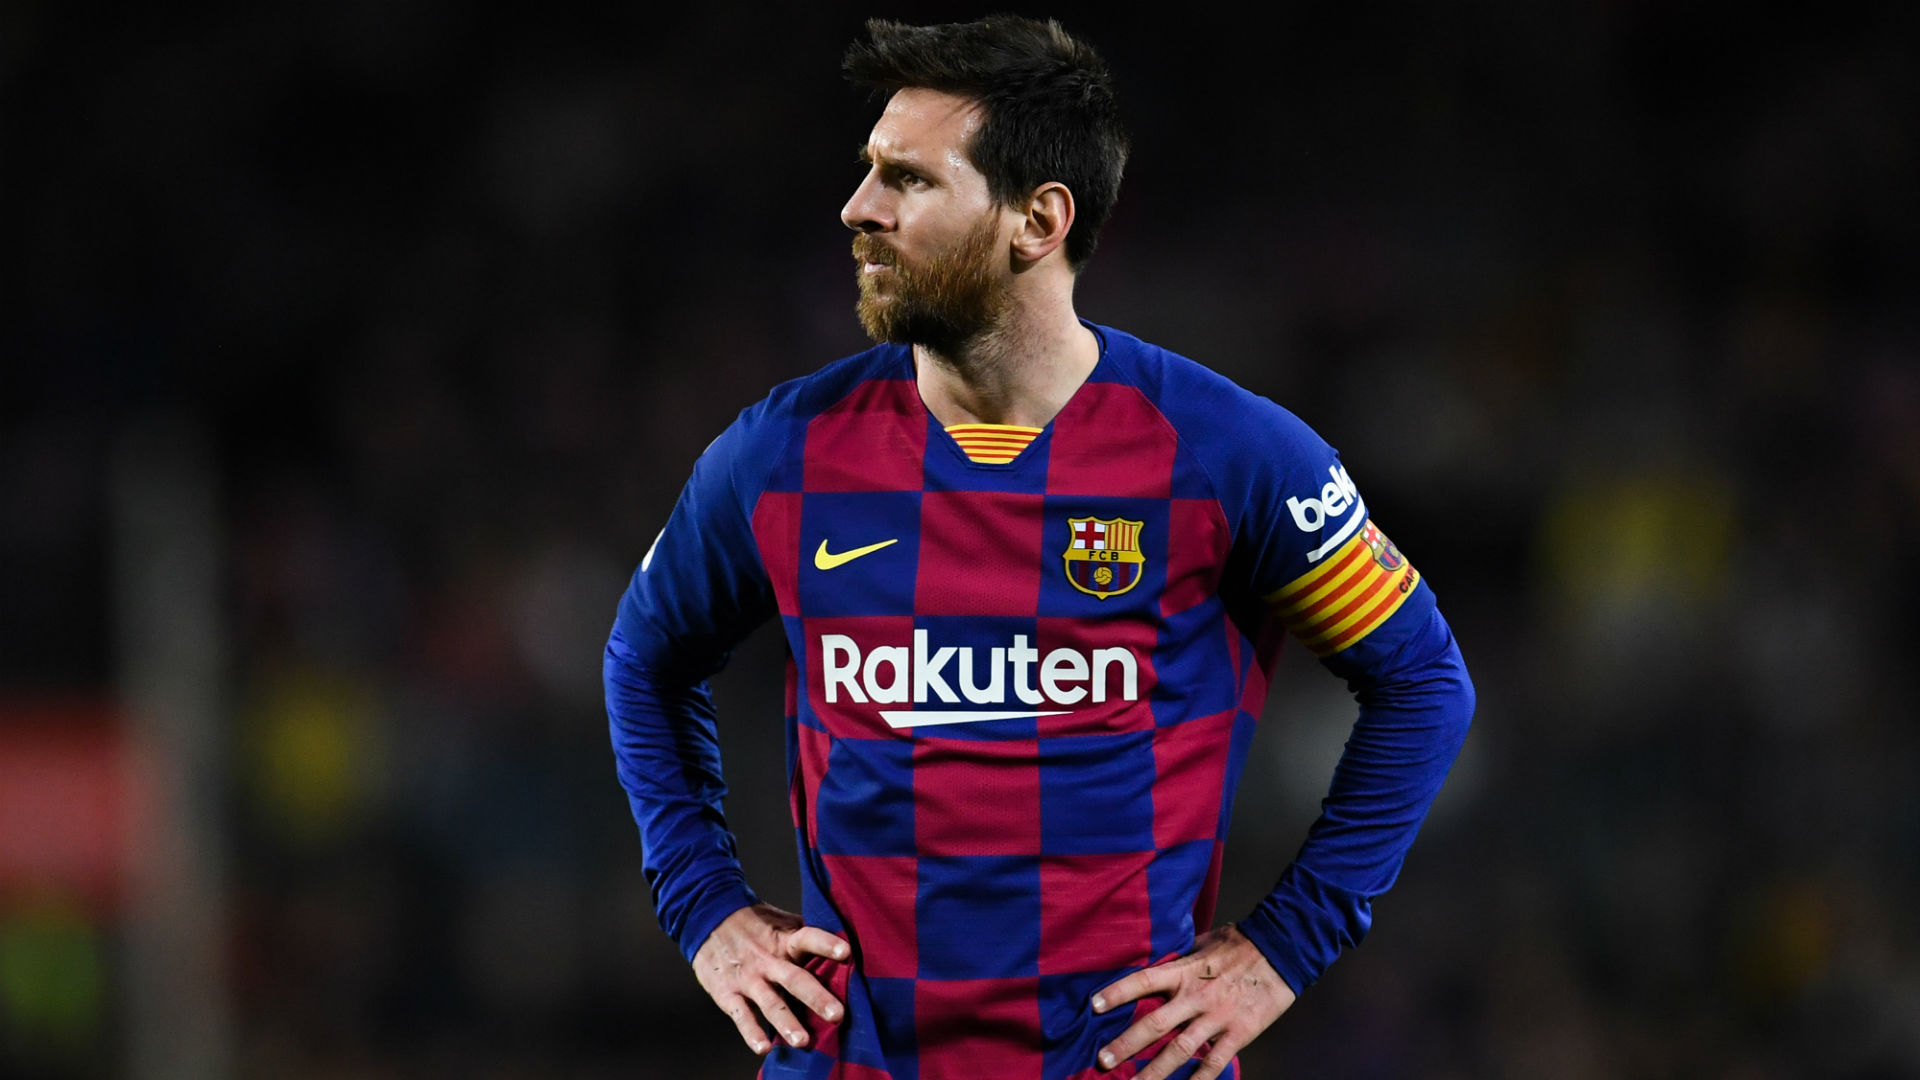 Barcelona without Messi - Opta data sheds light on what it would mean to replace the greatest of all time